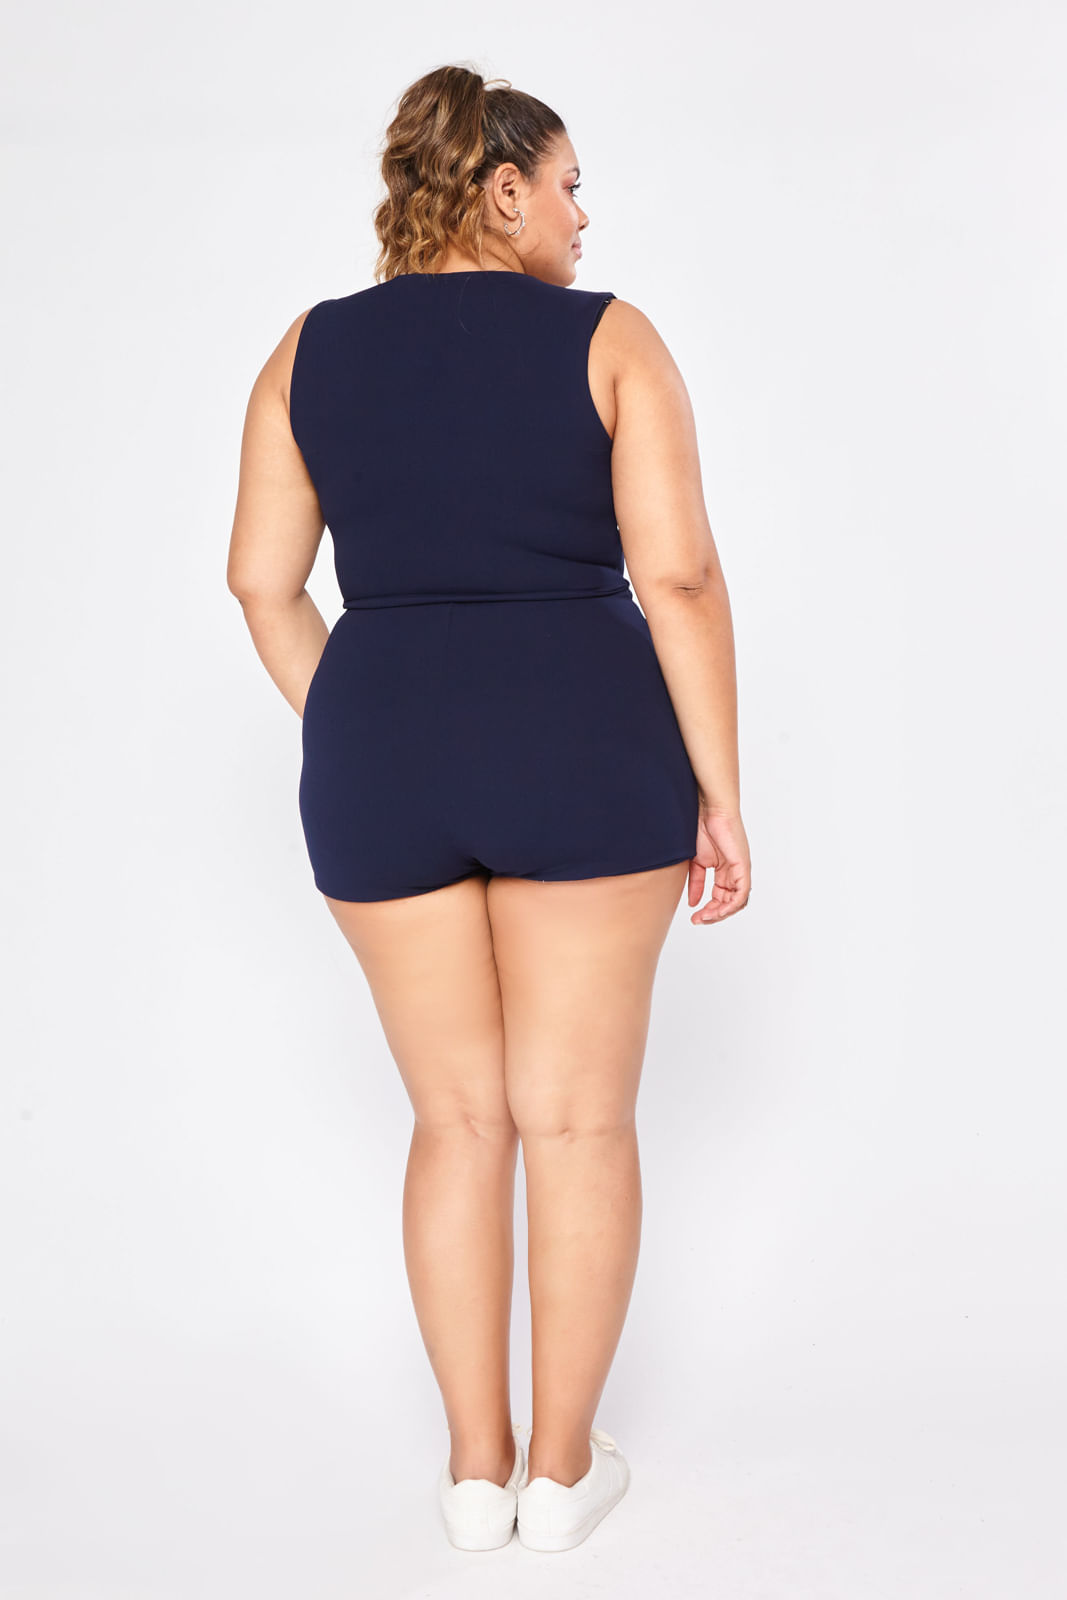 KPS007B-HP-_Shorts_Plus_Size_Hot_Pants_Azul_Marinho_7